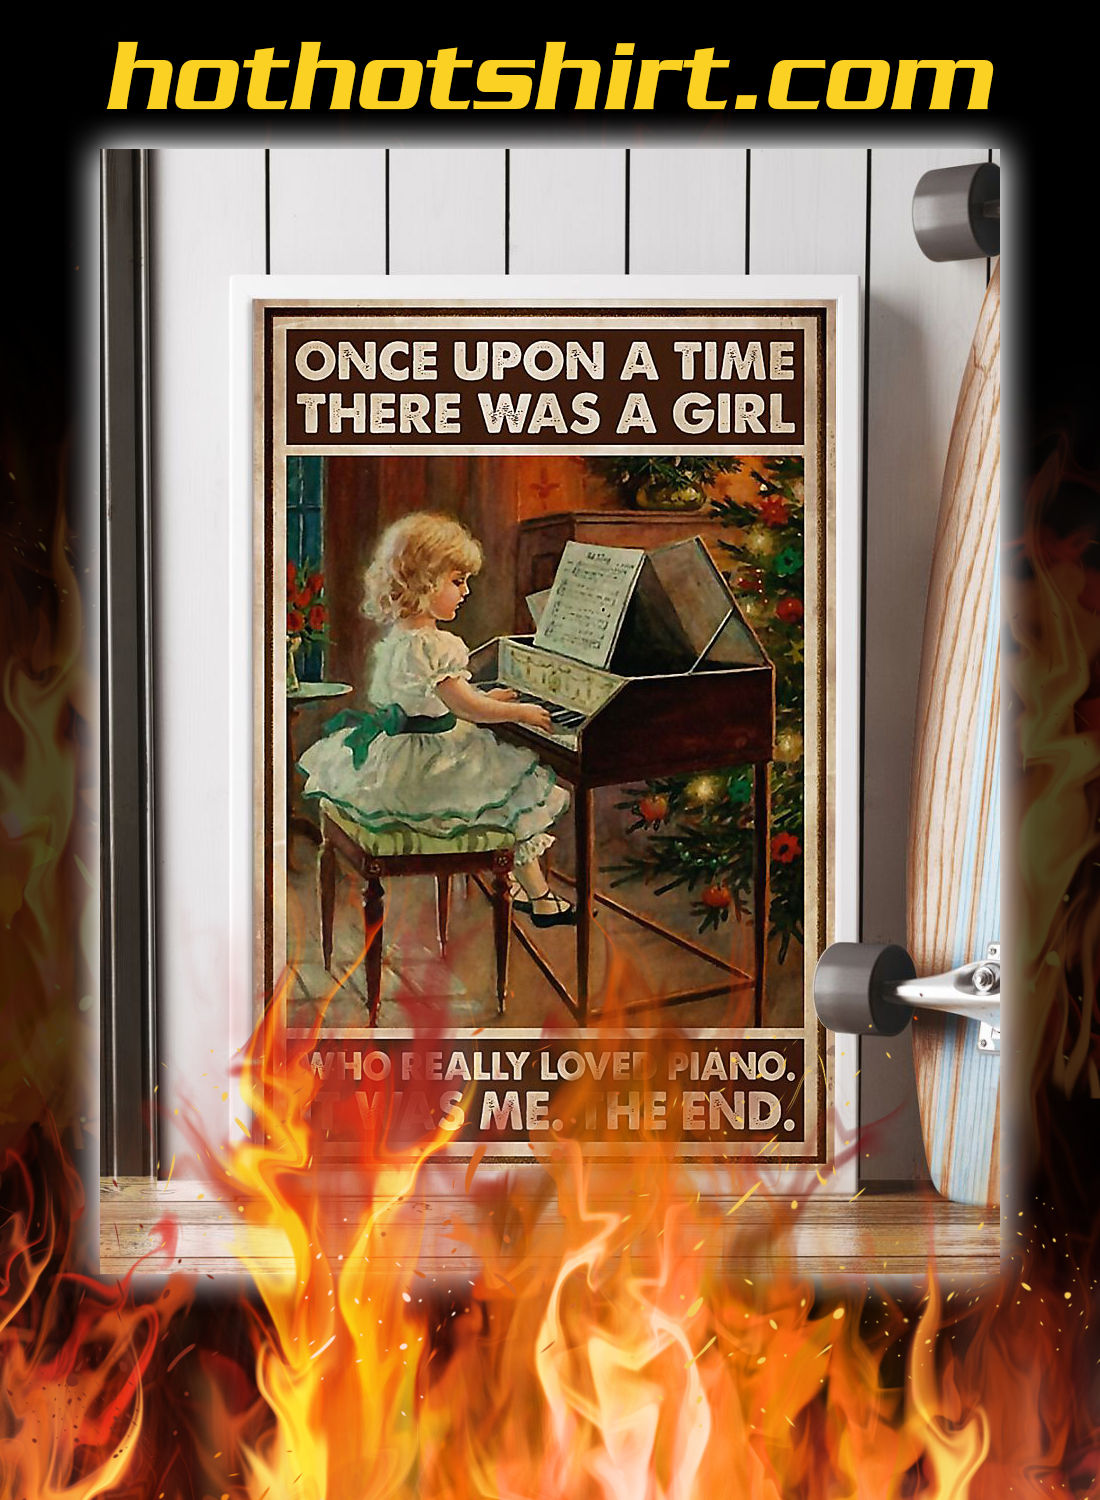 There was a girl who really loved piano poster 1